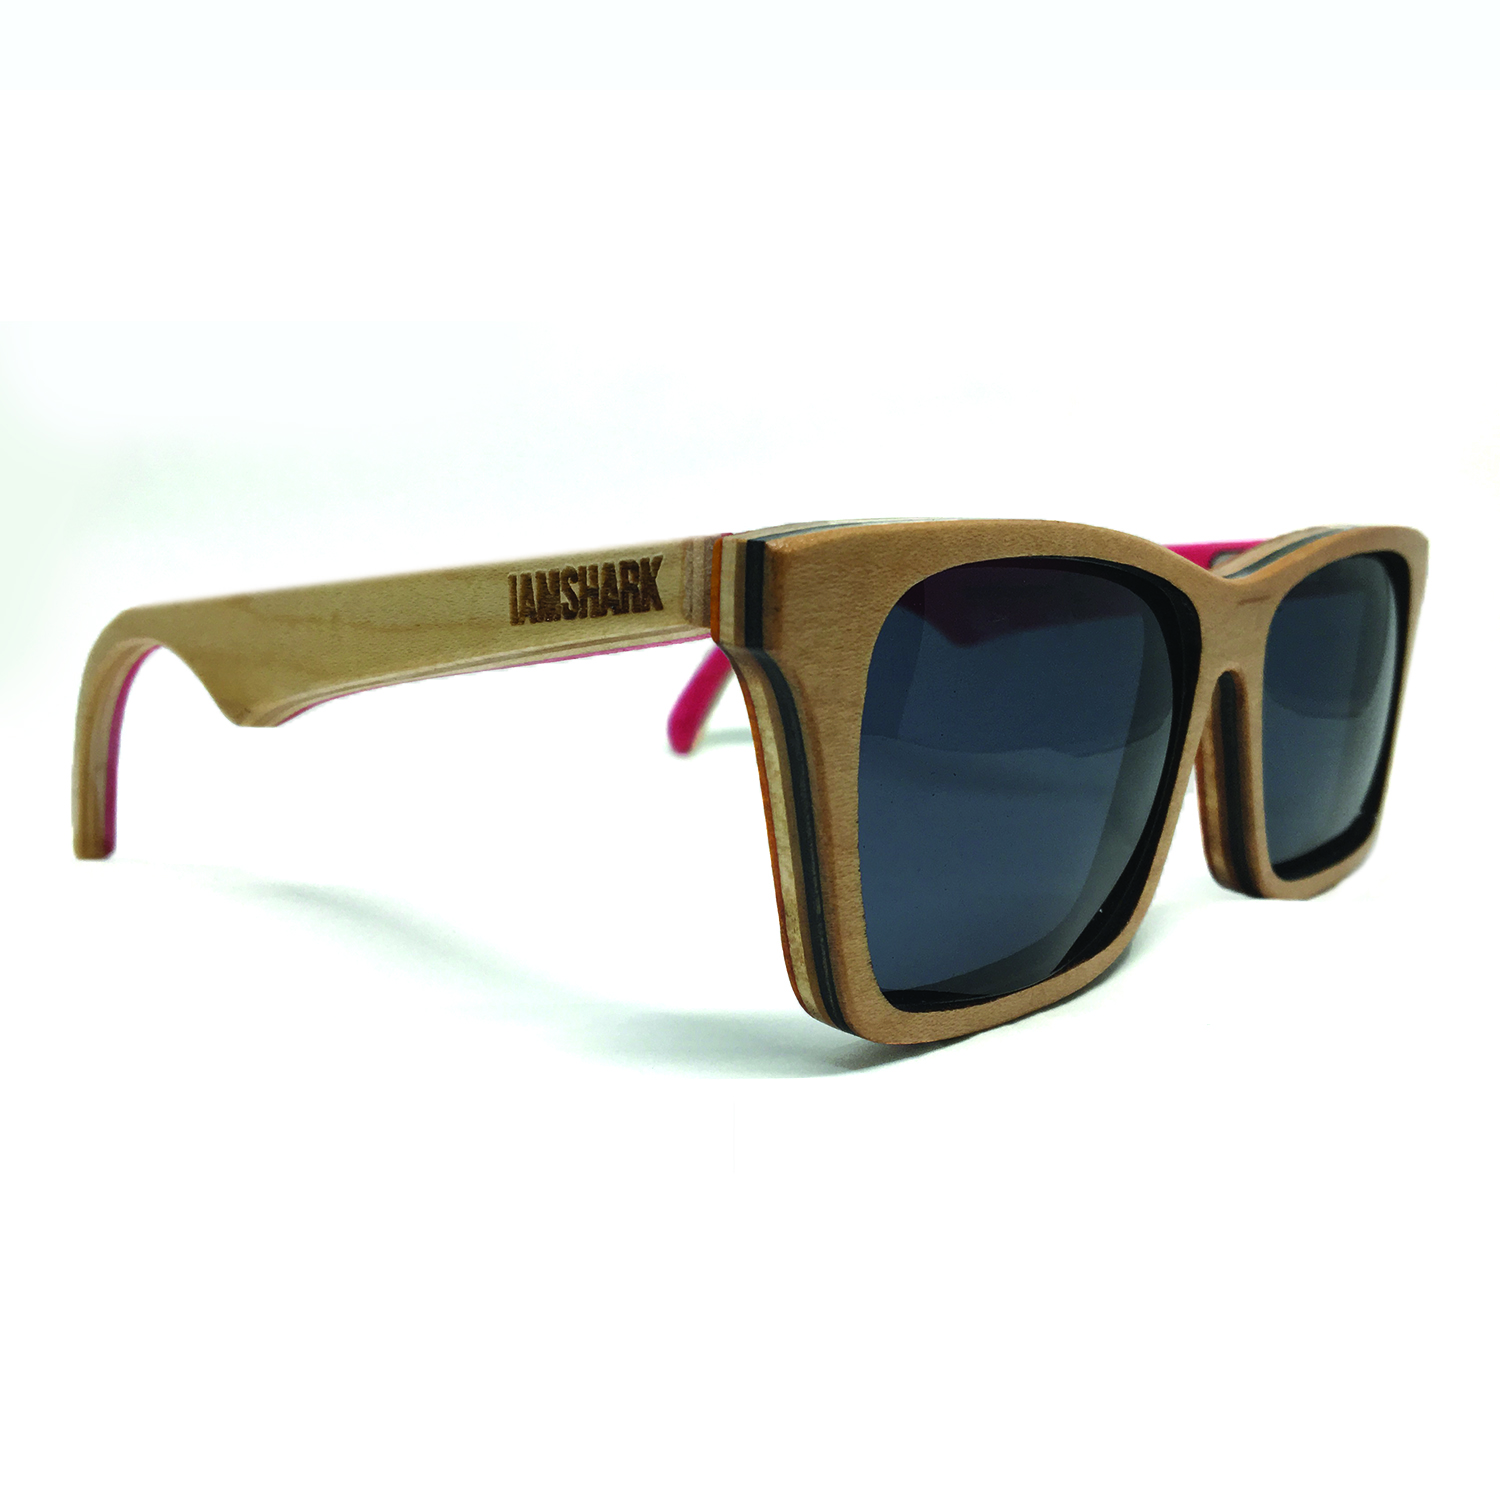 Acer Sunglasses - Natural